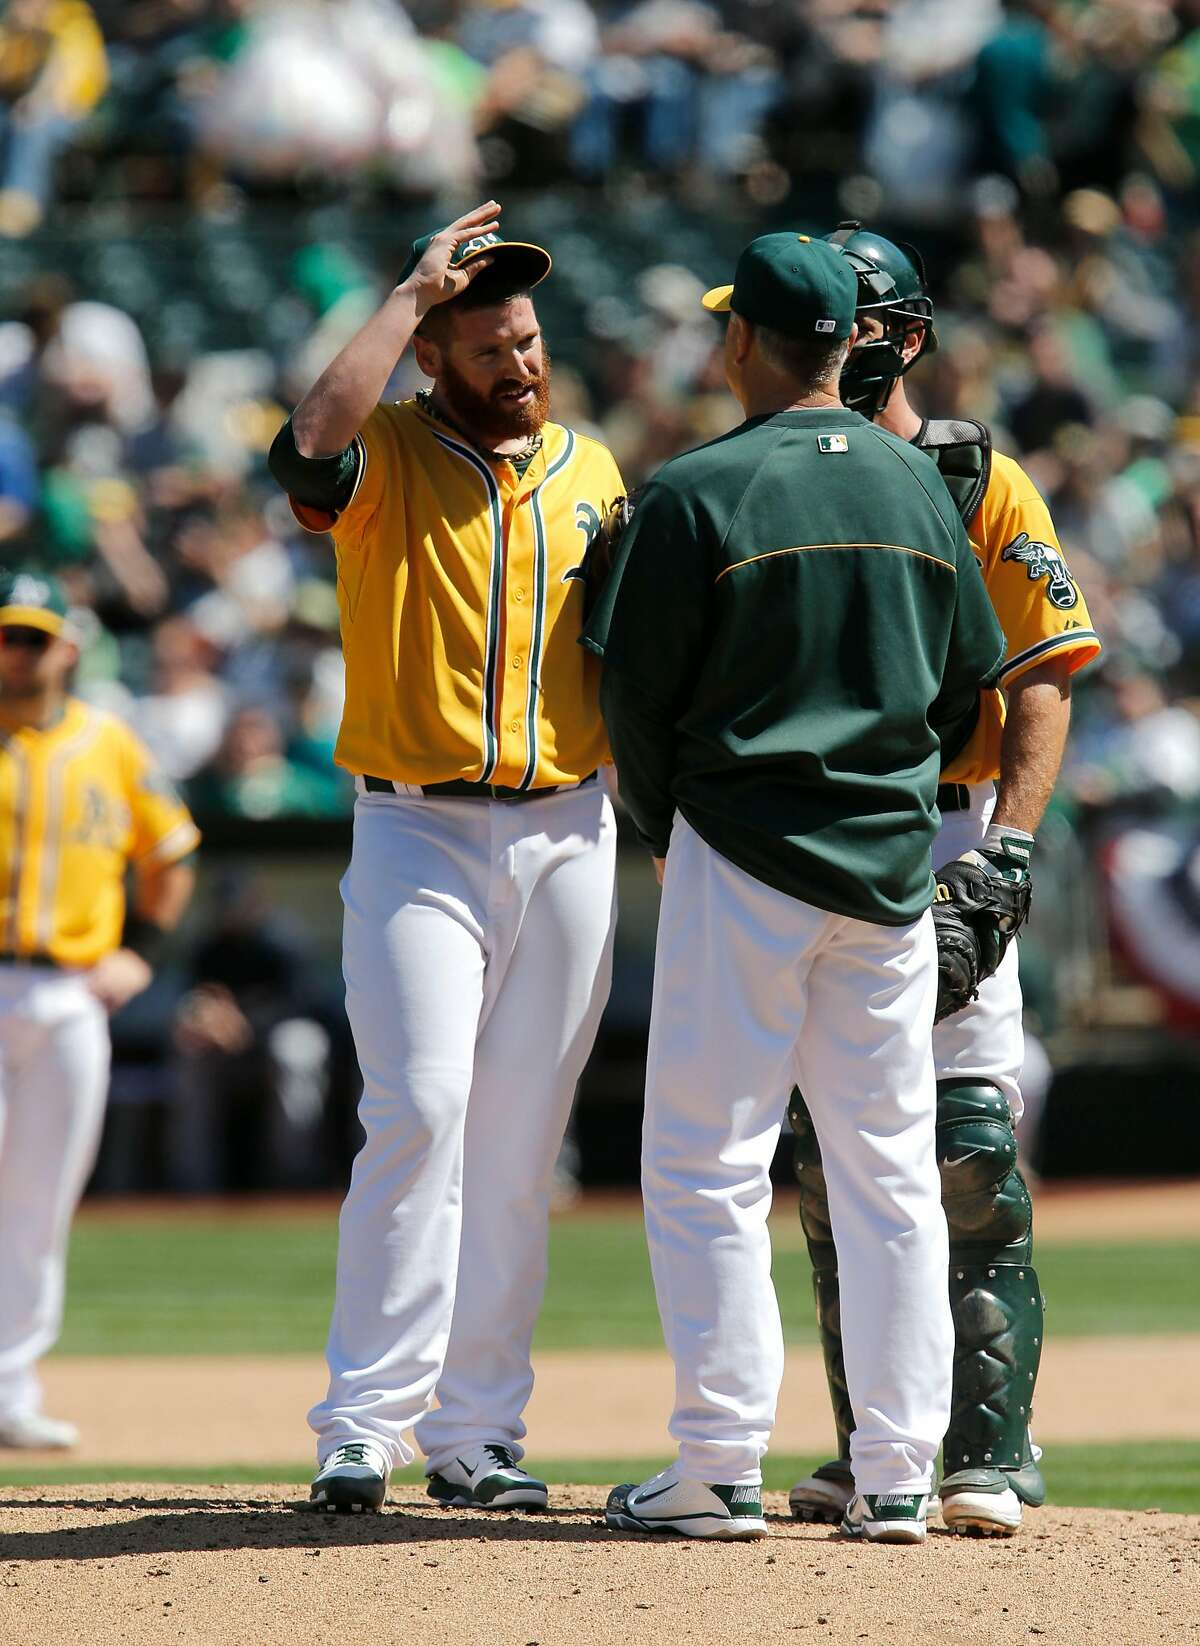 The A's starting pitcher Dan Straily, (67) talks things over on the mound with pitching coach Curt Young and catcher John Jaso, (5) in the fifth inning after giving up 3 runs as the Oakland Athletics take on the Seattle Mariners at the O.co Coliseum on Saturday April 5, 2014, in Oakland, Calif.